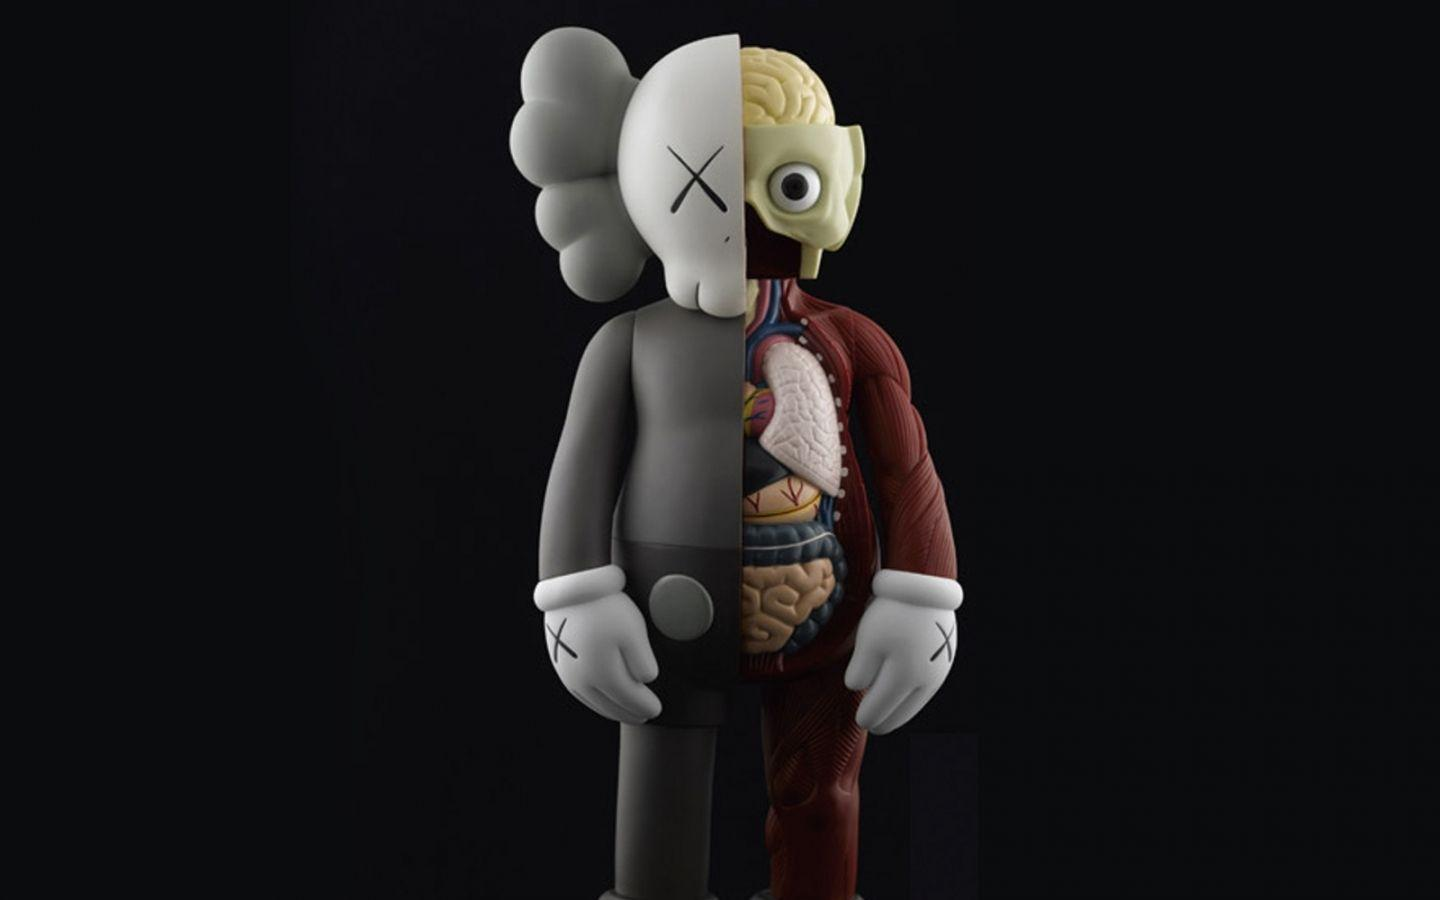 Kaws Iphone Wallpapers Top Free Kaws Iphone Backgrounds